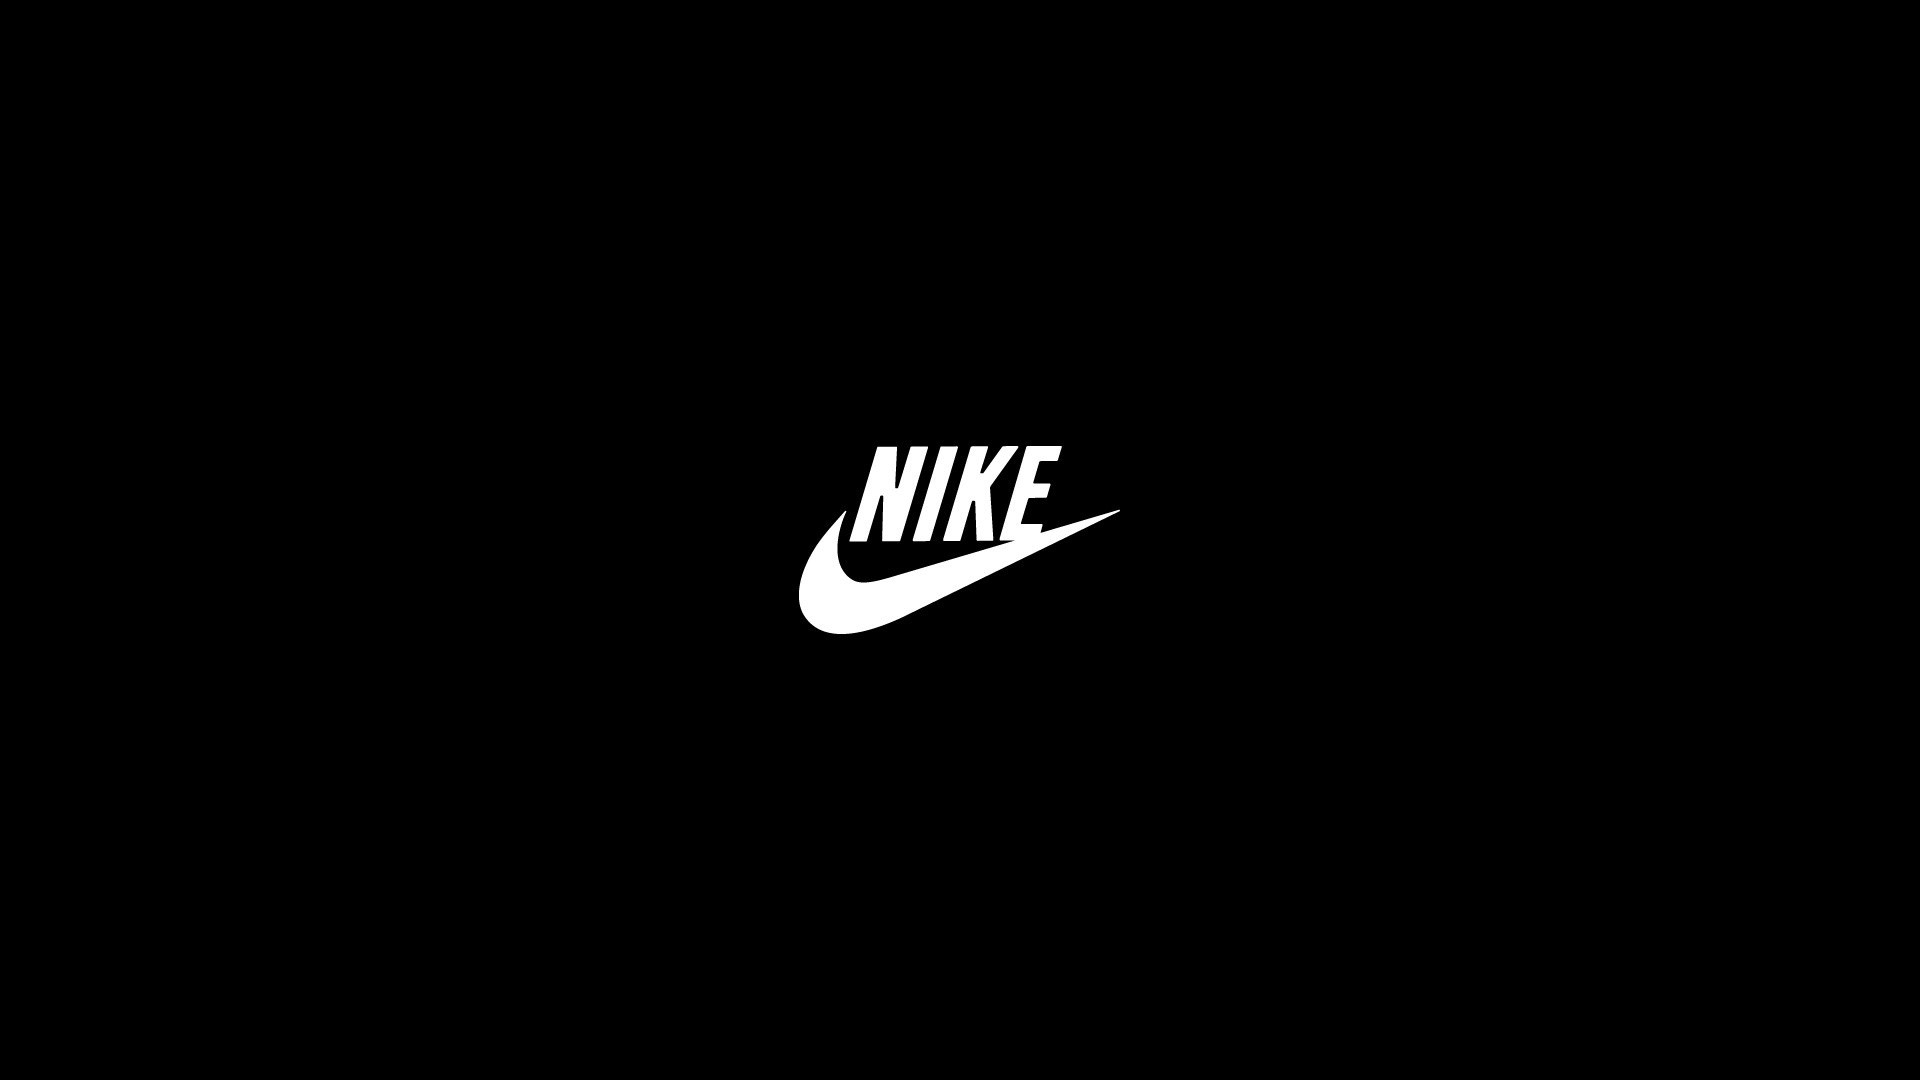 Cool Iphone Wallpaper Ideas Black Nike Wallpaper 60 Images